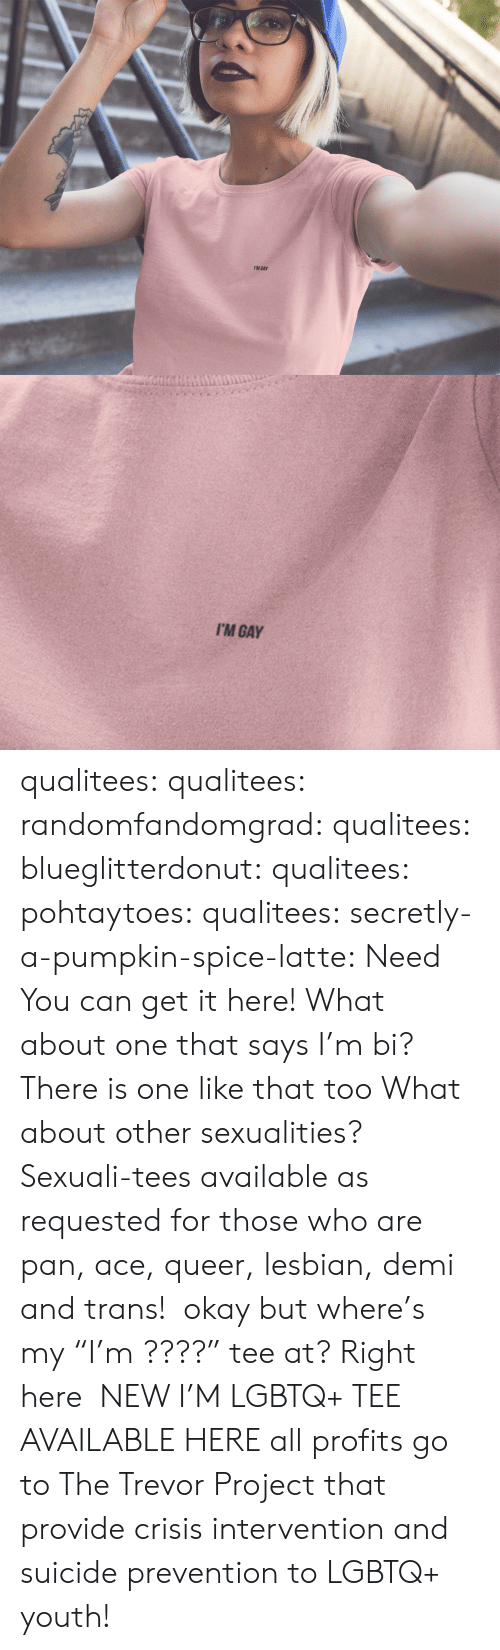 """Prevention: I'M GAY   I'M GAY qualitees:  qualitees: randomfandomgrad:  qualitees:  blueglitterdonut:  qualitees:   pohtaytoes:  qualitees:   secretly-a-pumpkin-spice-latte: Need You can get it here!   What about one that says I'm bi?  There is one like that too   What about other sexualities?  Sexuali-tees available as requested for those who are pan, ace,queer,lesbian, demi and trans!  okay but where's my""""I'm ????"""" tee at?  Right here  NEW I'M LGBTQ+ TEE AVAILABLE HEREall profits go to The Trevor Project that provide crisis intervention and suicide prevention to LGBTQ+ youth!"""